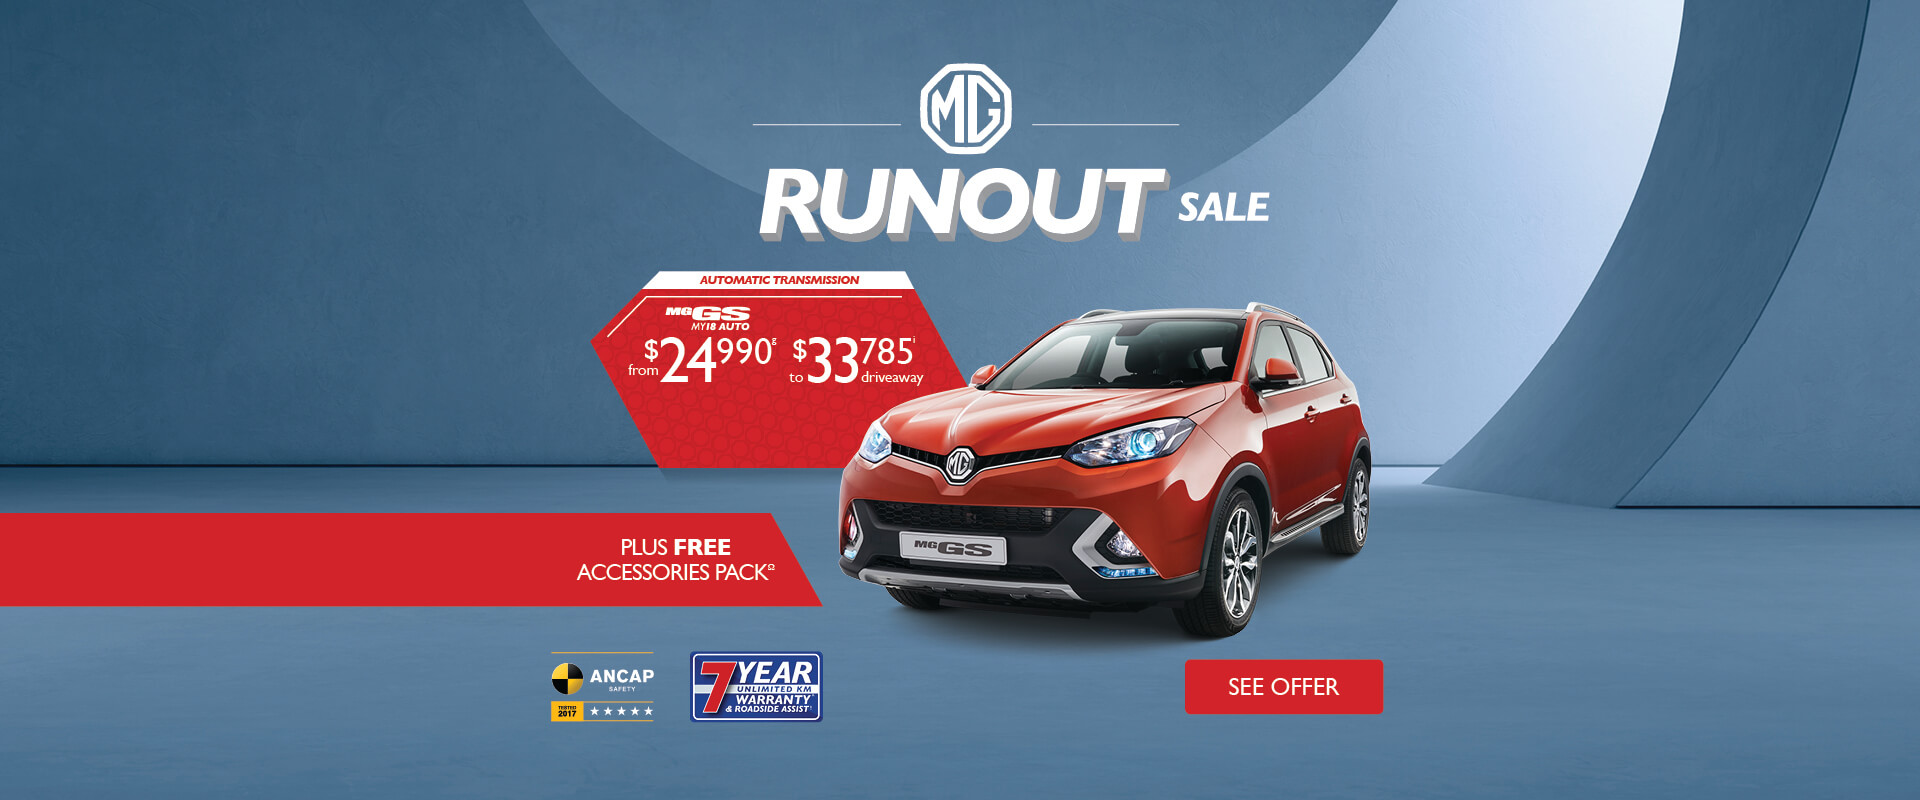 MG Runout Sale